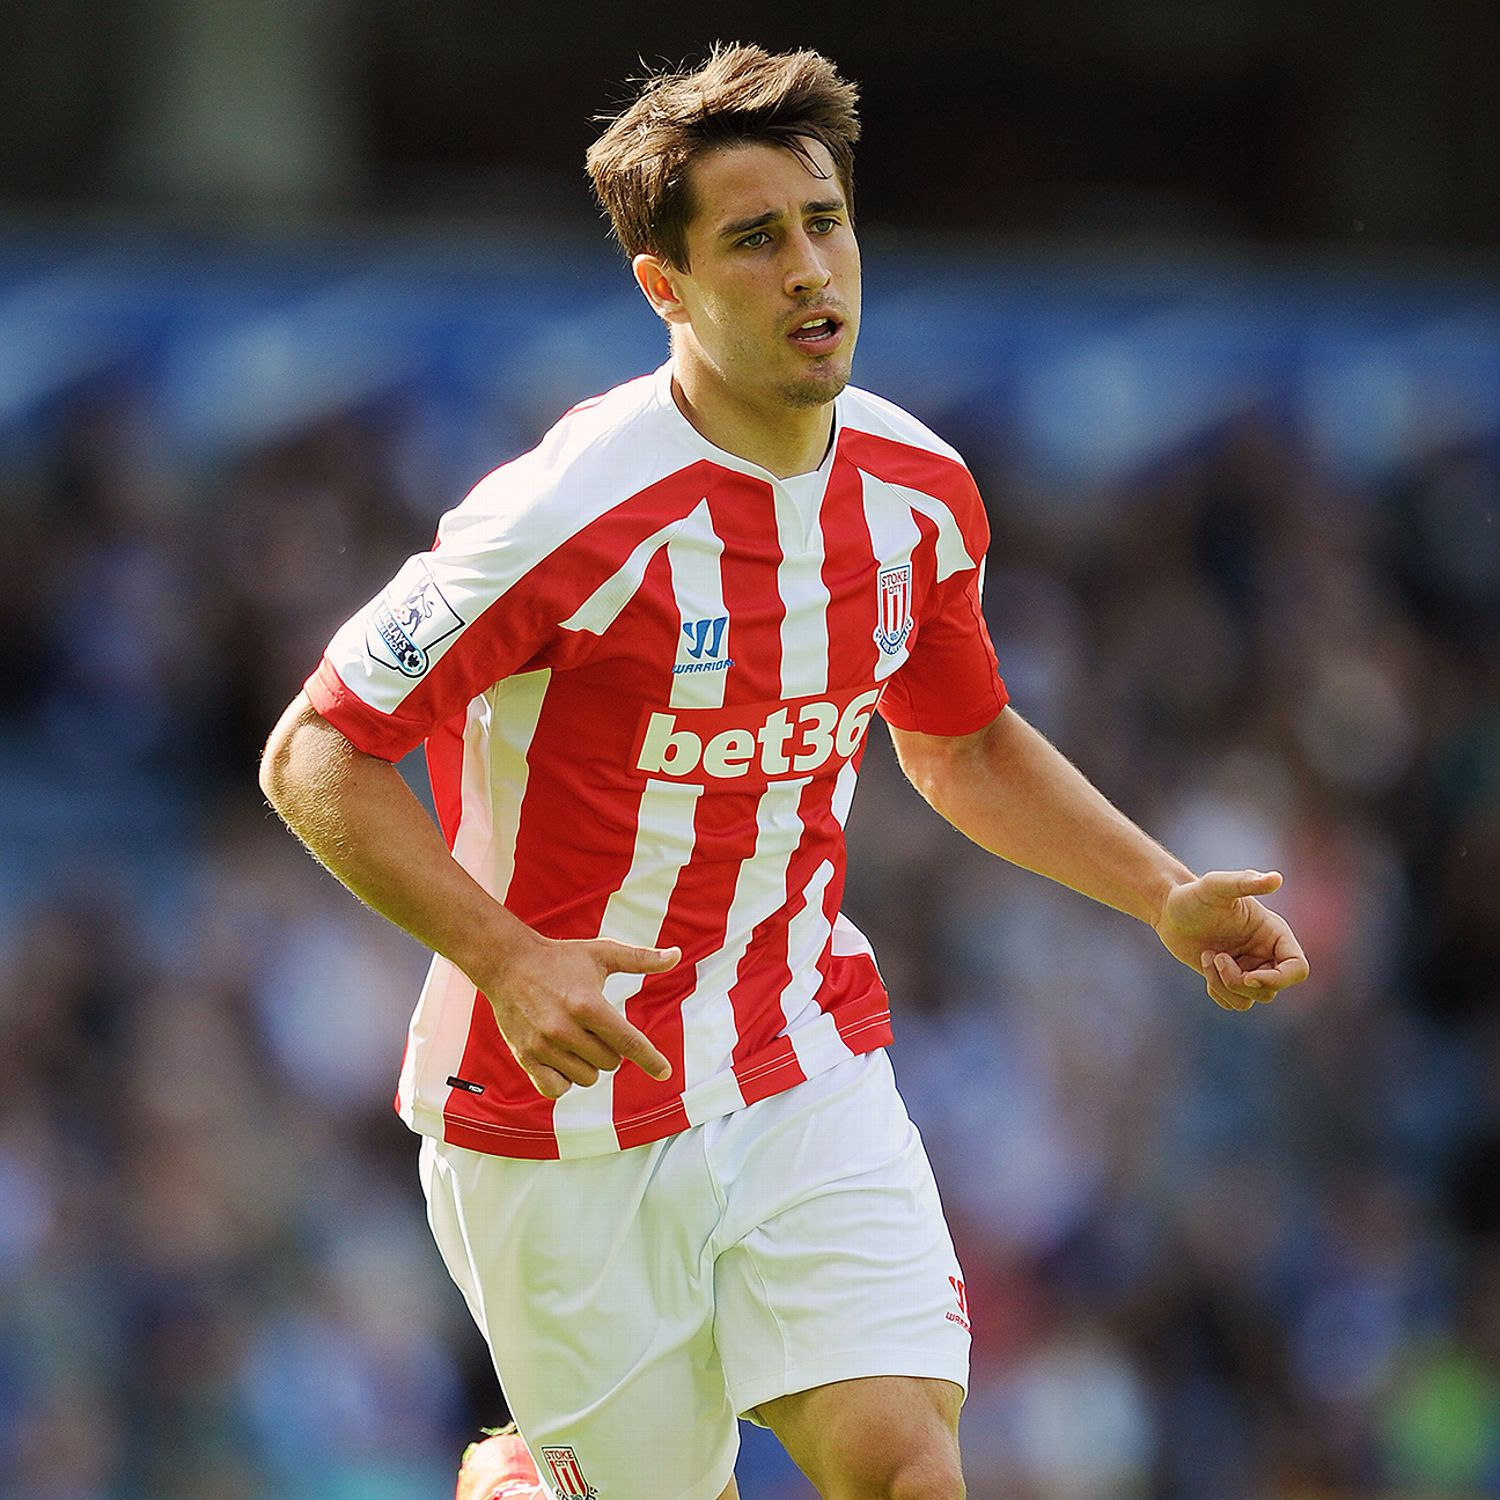 Epl Matches Live On Rcti Indonesia Tv Channel: Bojan Continuing To Turn Heads At Stoke